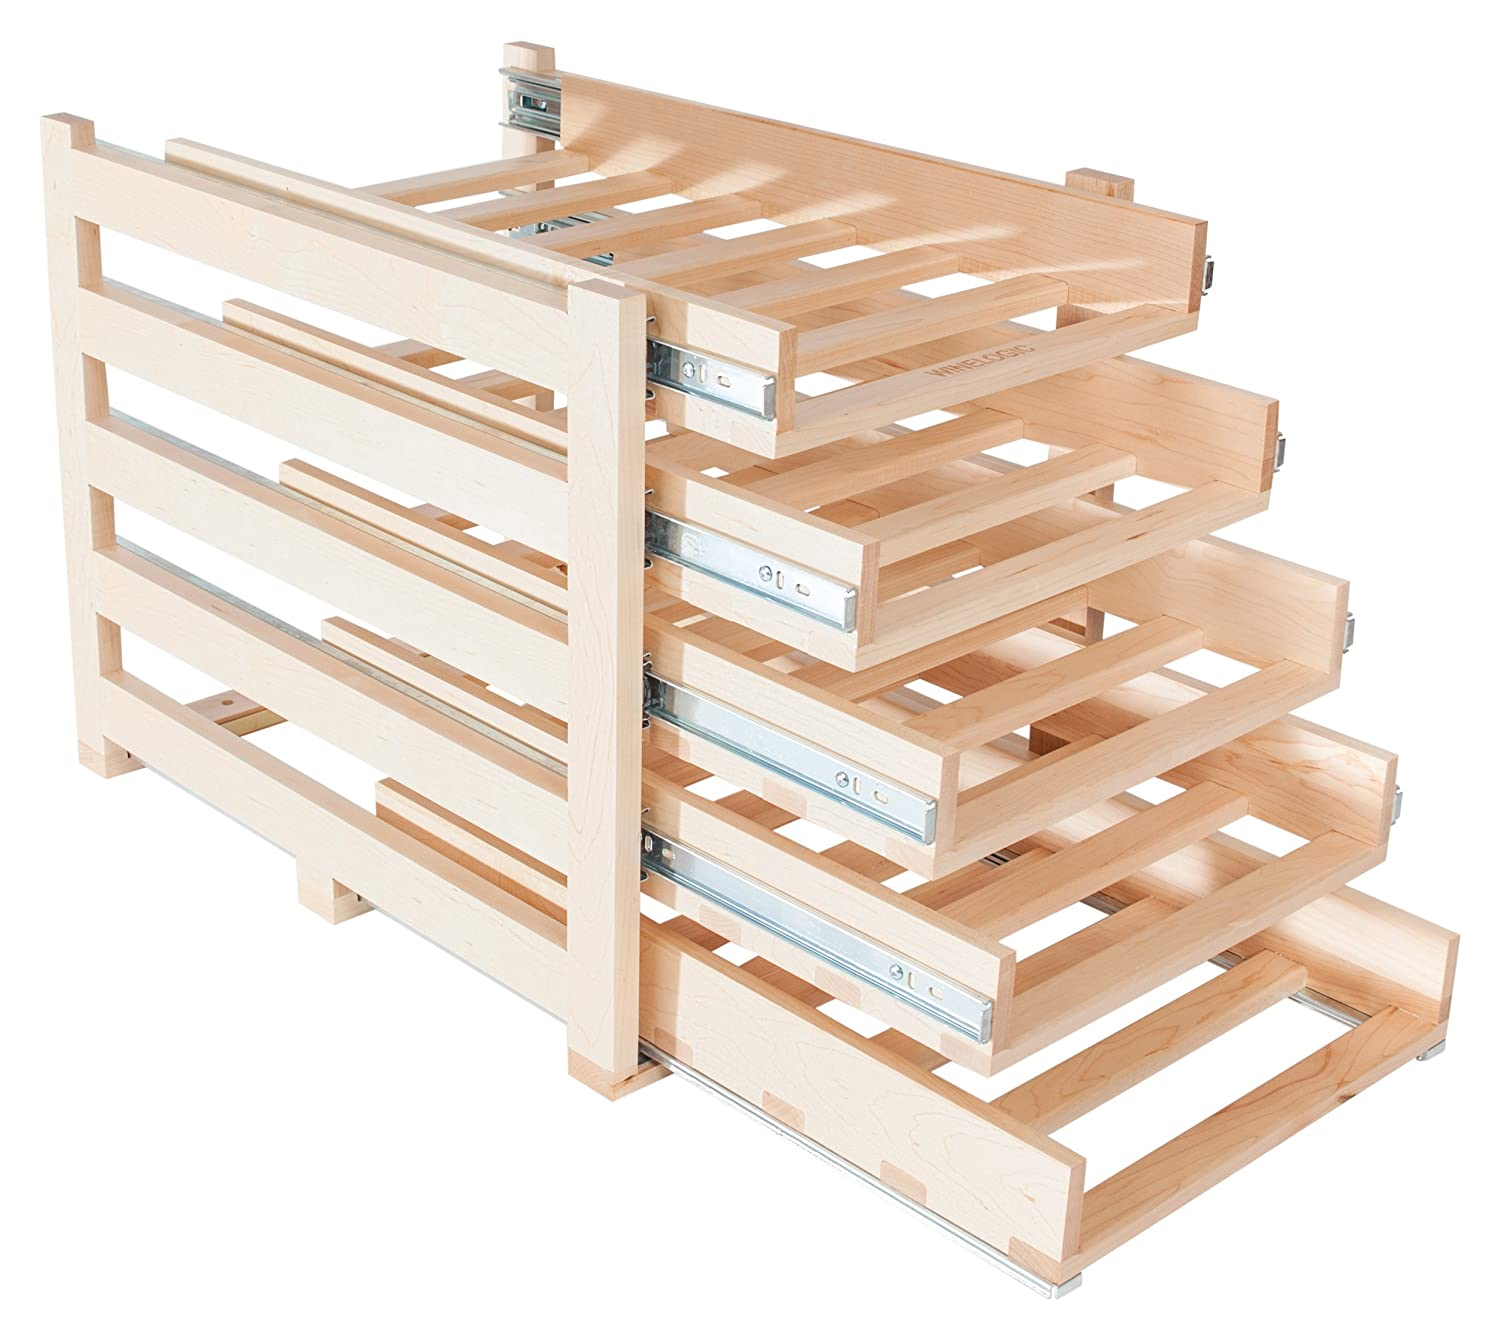 Wine Logic WL-MAPLE30 In-Cabinet Sliding Tray Wine Rack, 30-Bottle, Solid Maple Wood, Unstained with Clear Satin Lacquer Finish